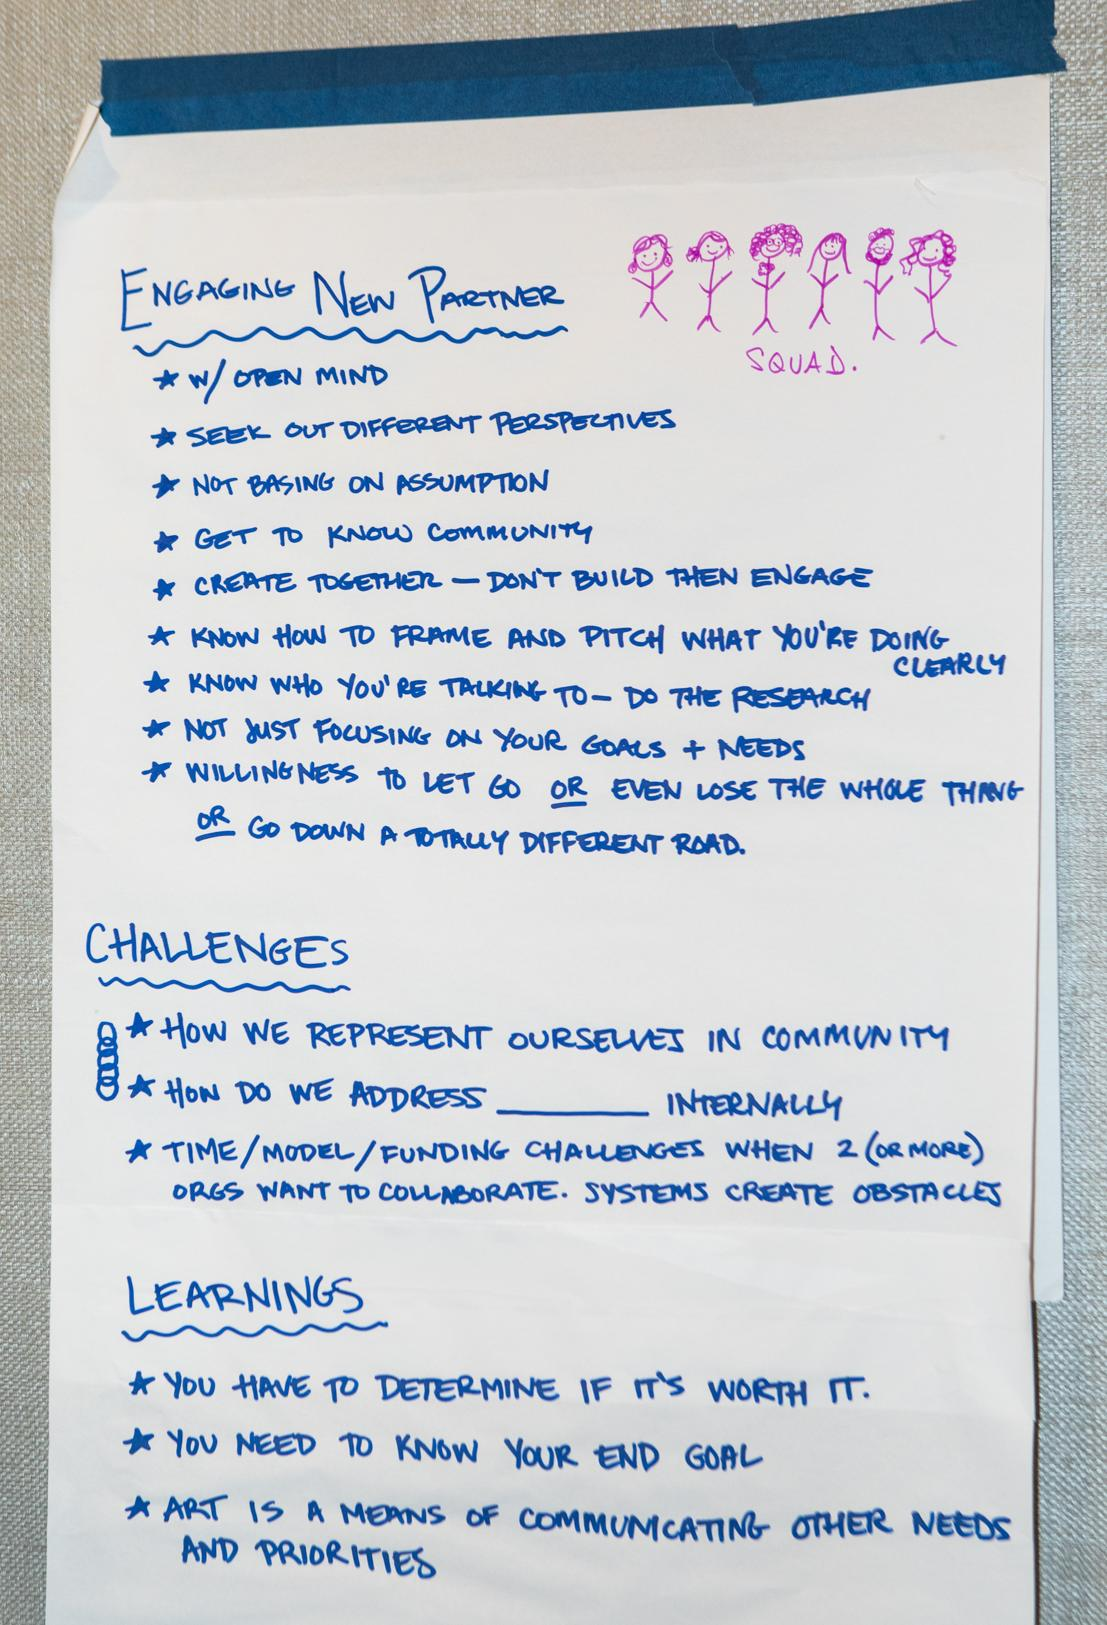 A flip chart page on a wall with notes from a conversation on engaging new partners